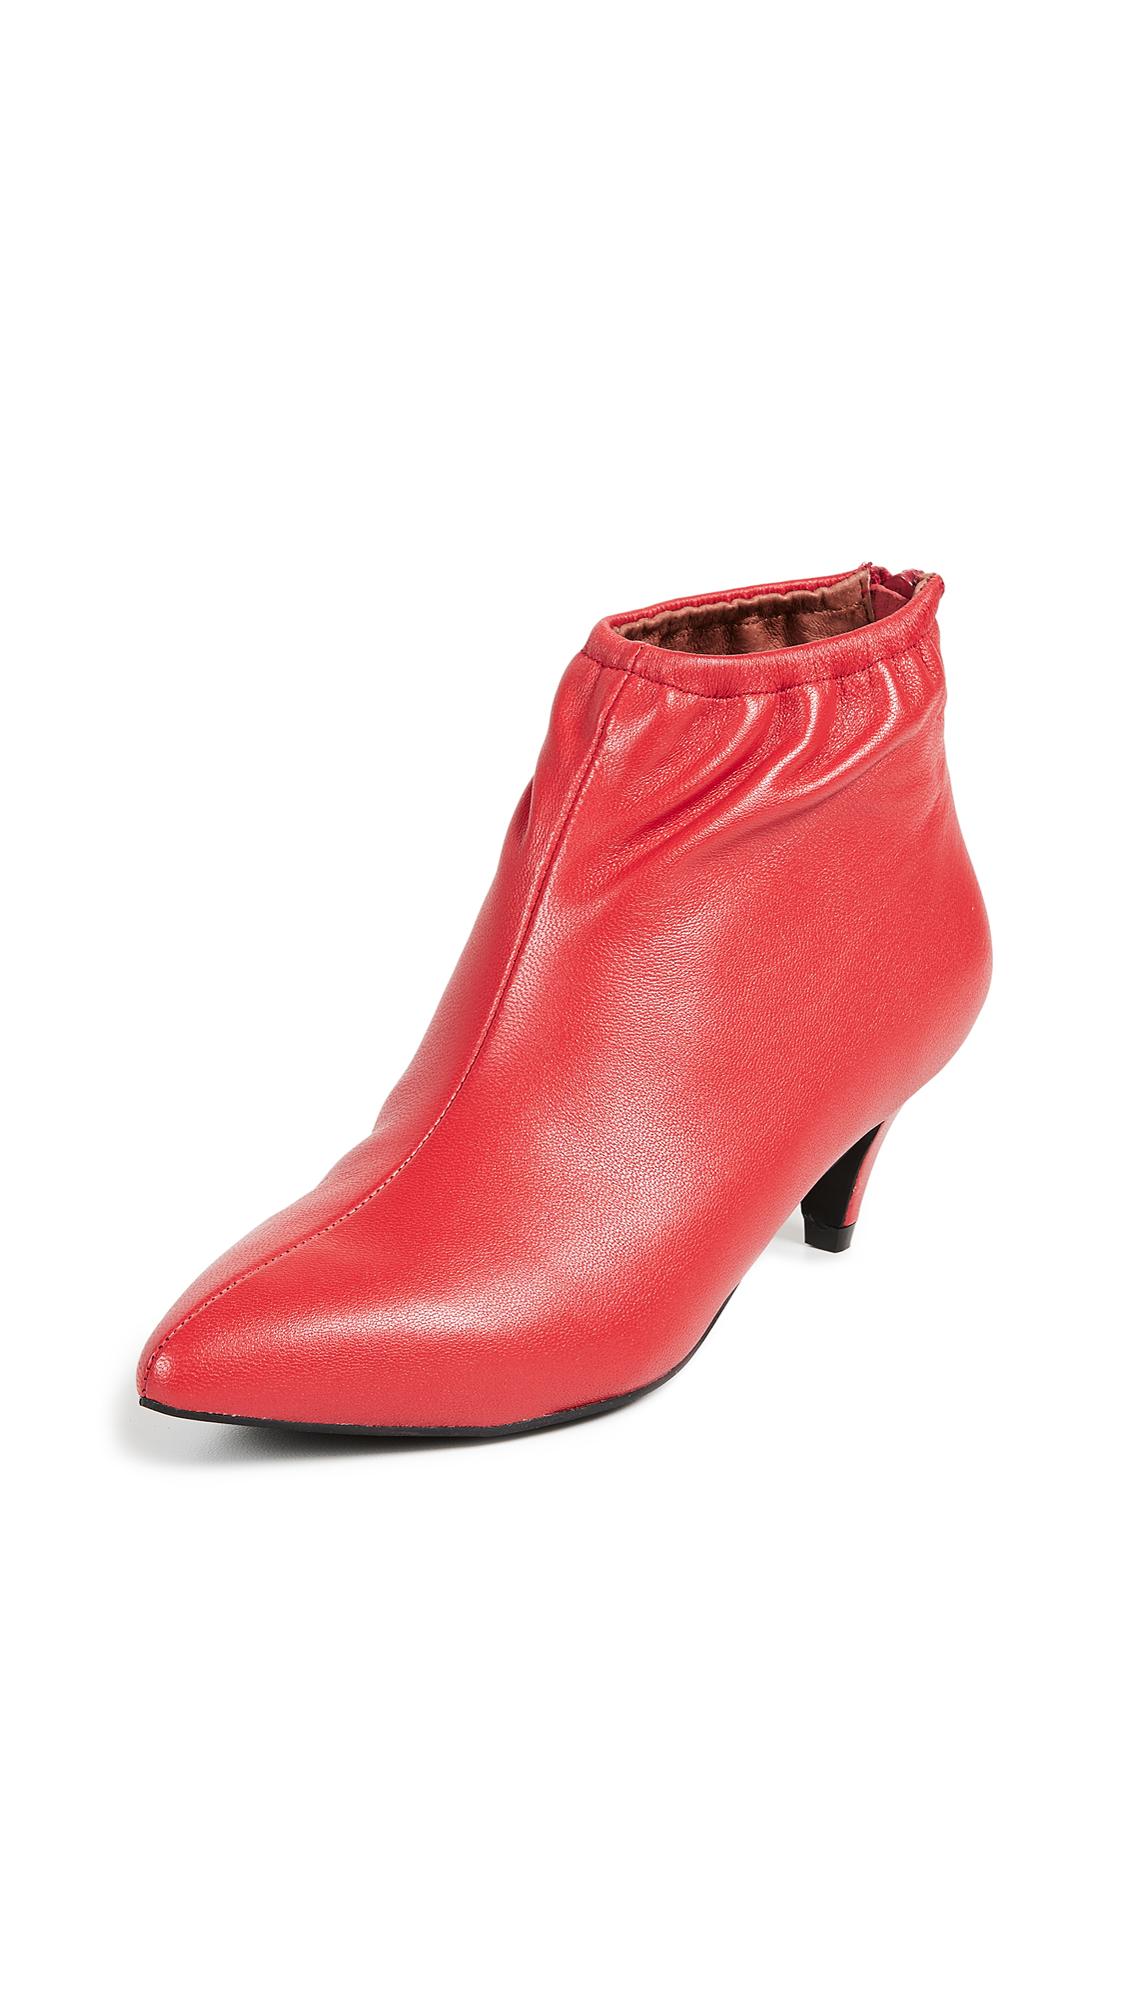 Jeffrey Campbell Zosia Low Heel Booties - Red